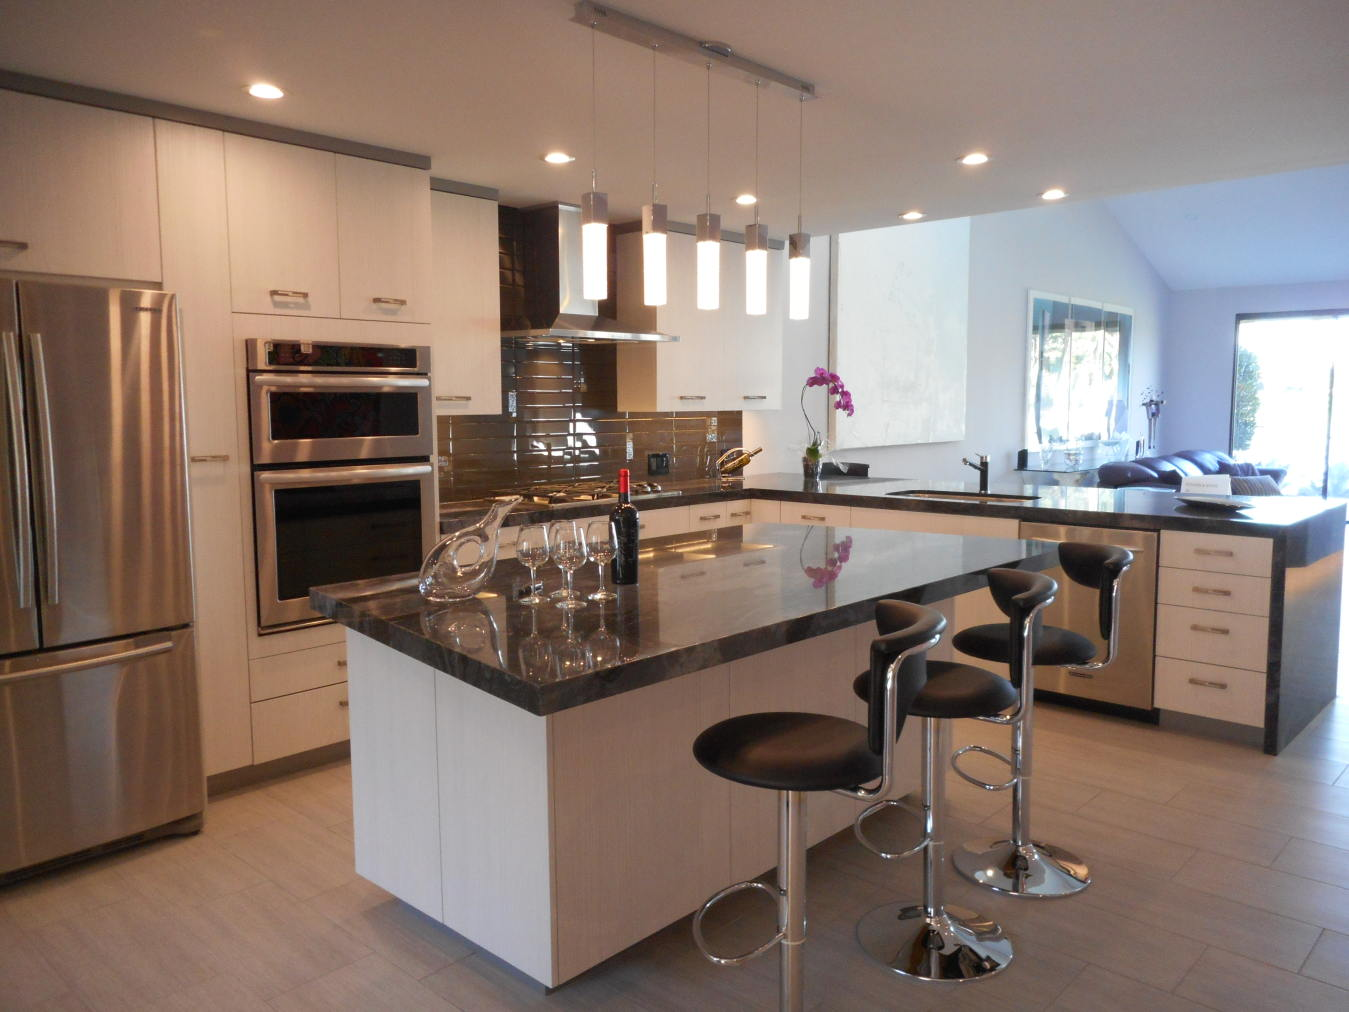 kitchen cabinets remodeling march 2015 cabinets of the desert rh cabinetsofthedesert com